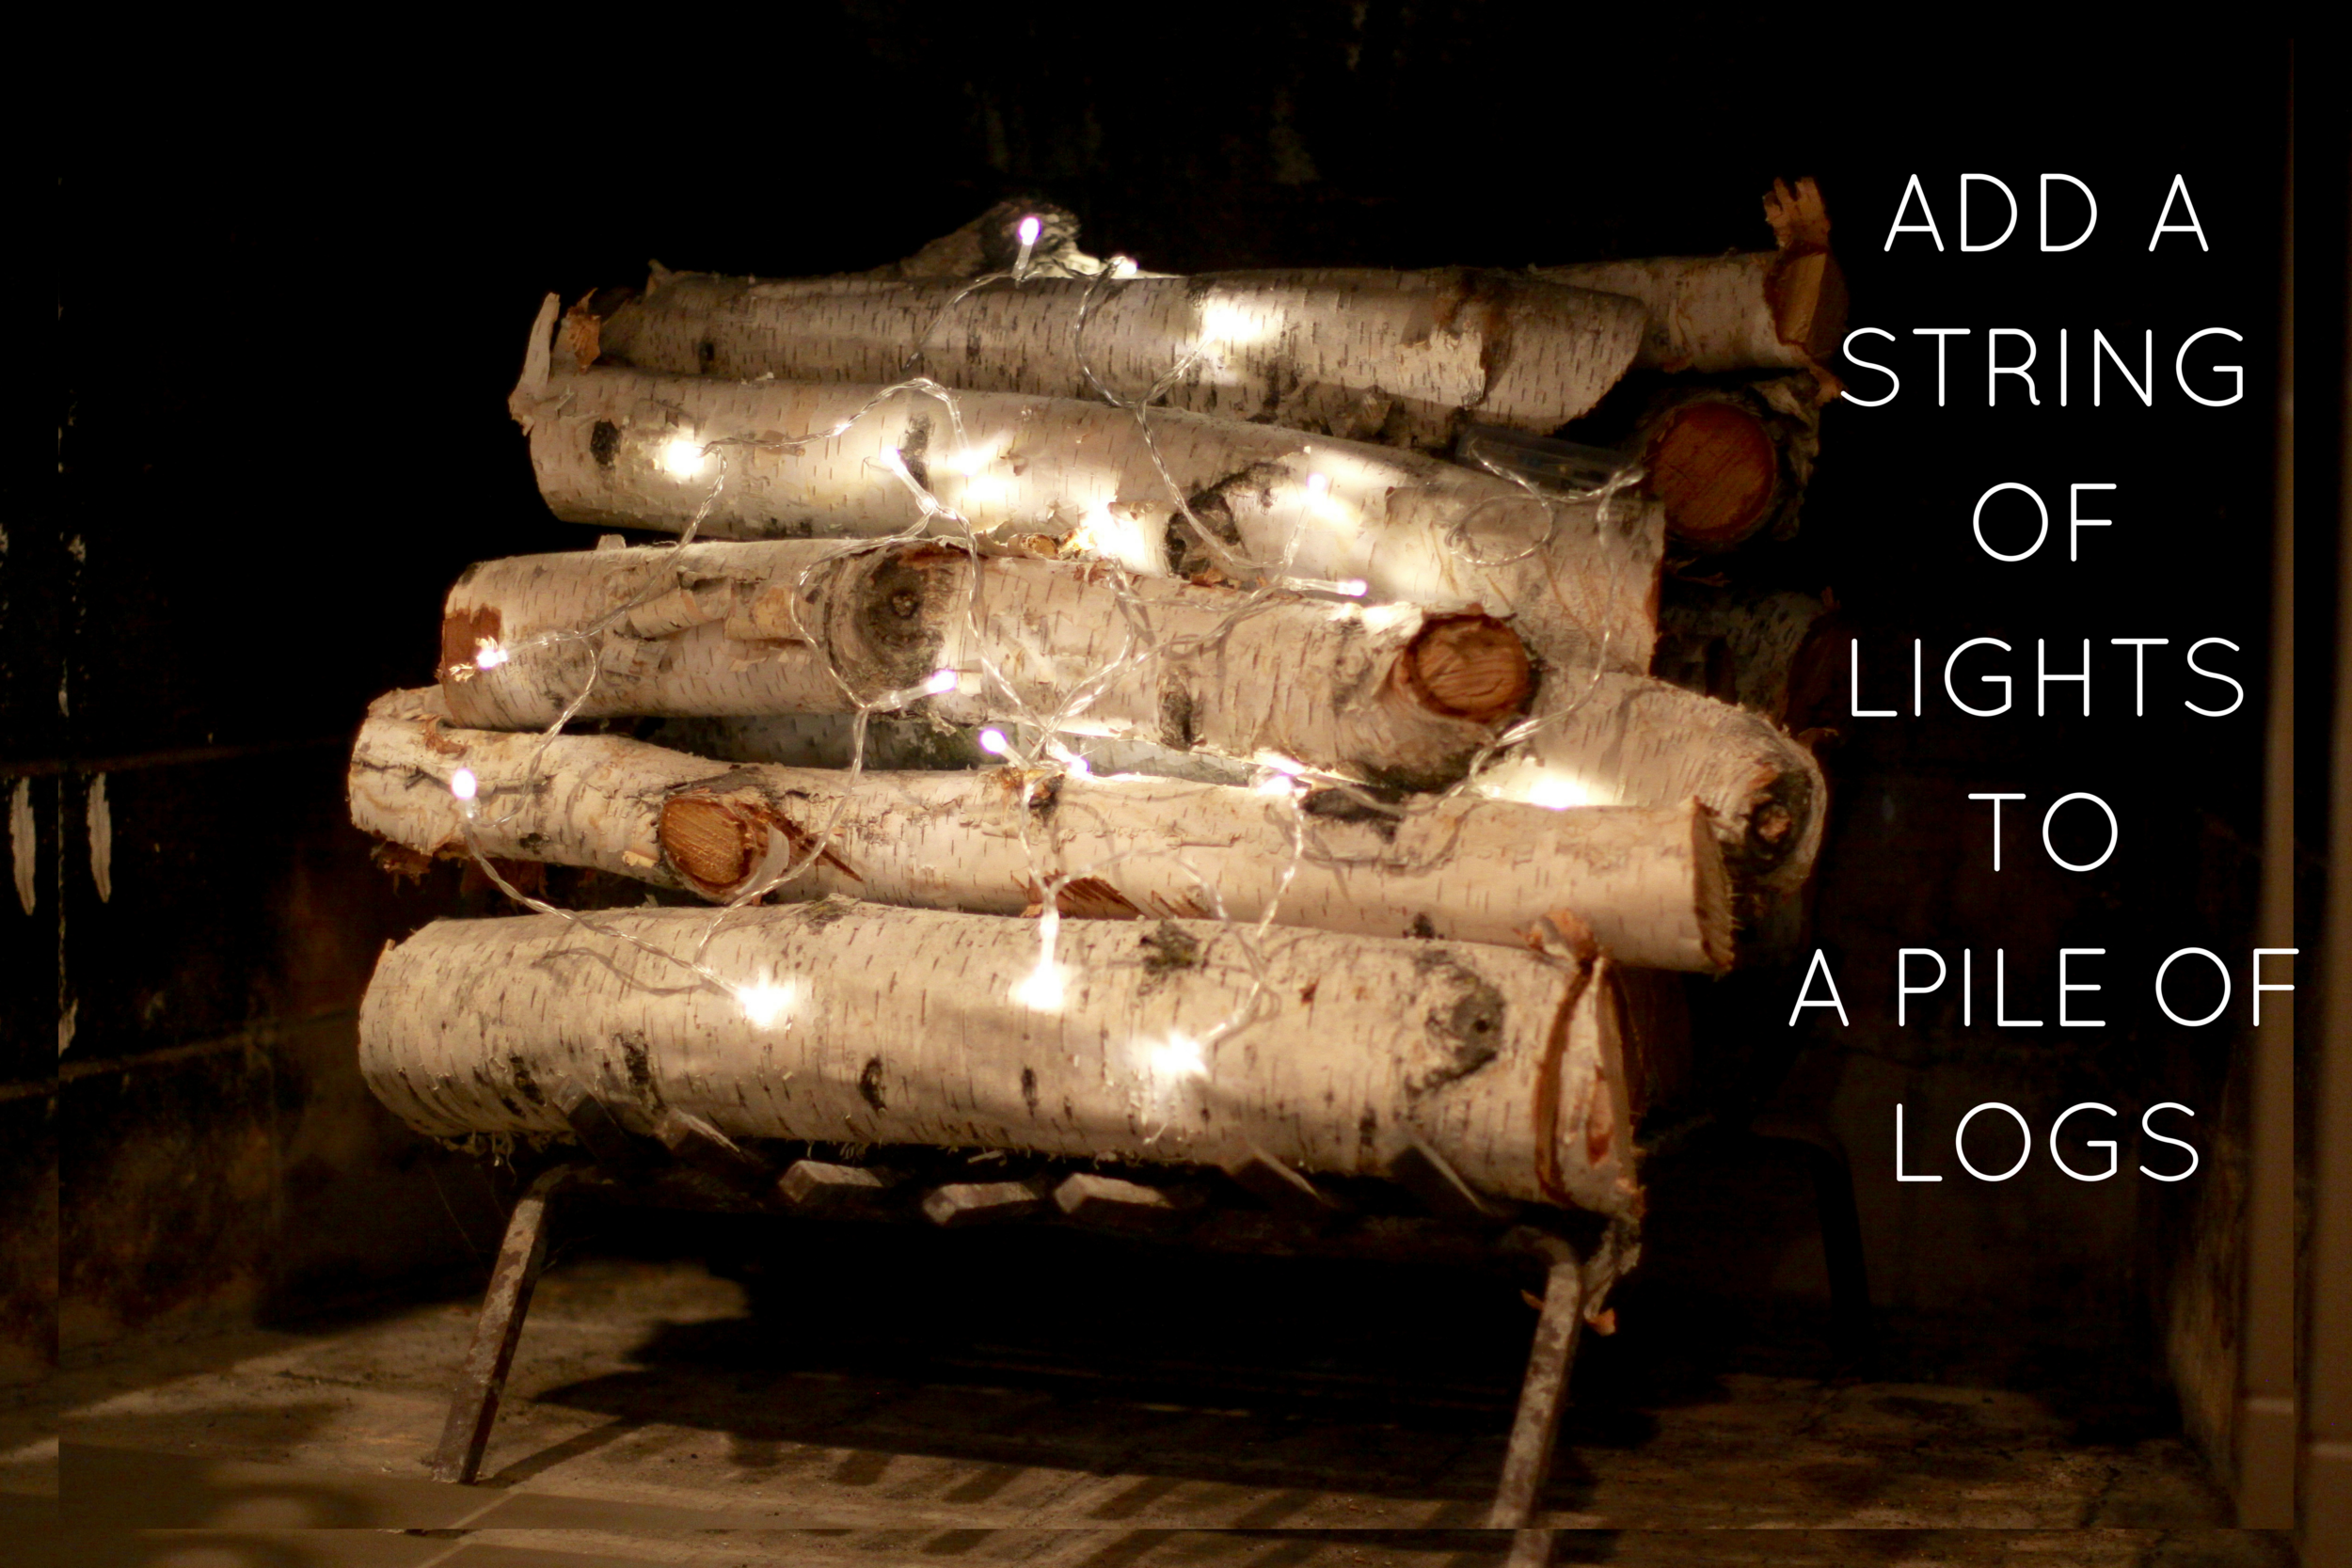 Easy Fireplace Idea—Battery-Operated Strand Lights Wrapped around Logs